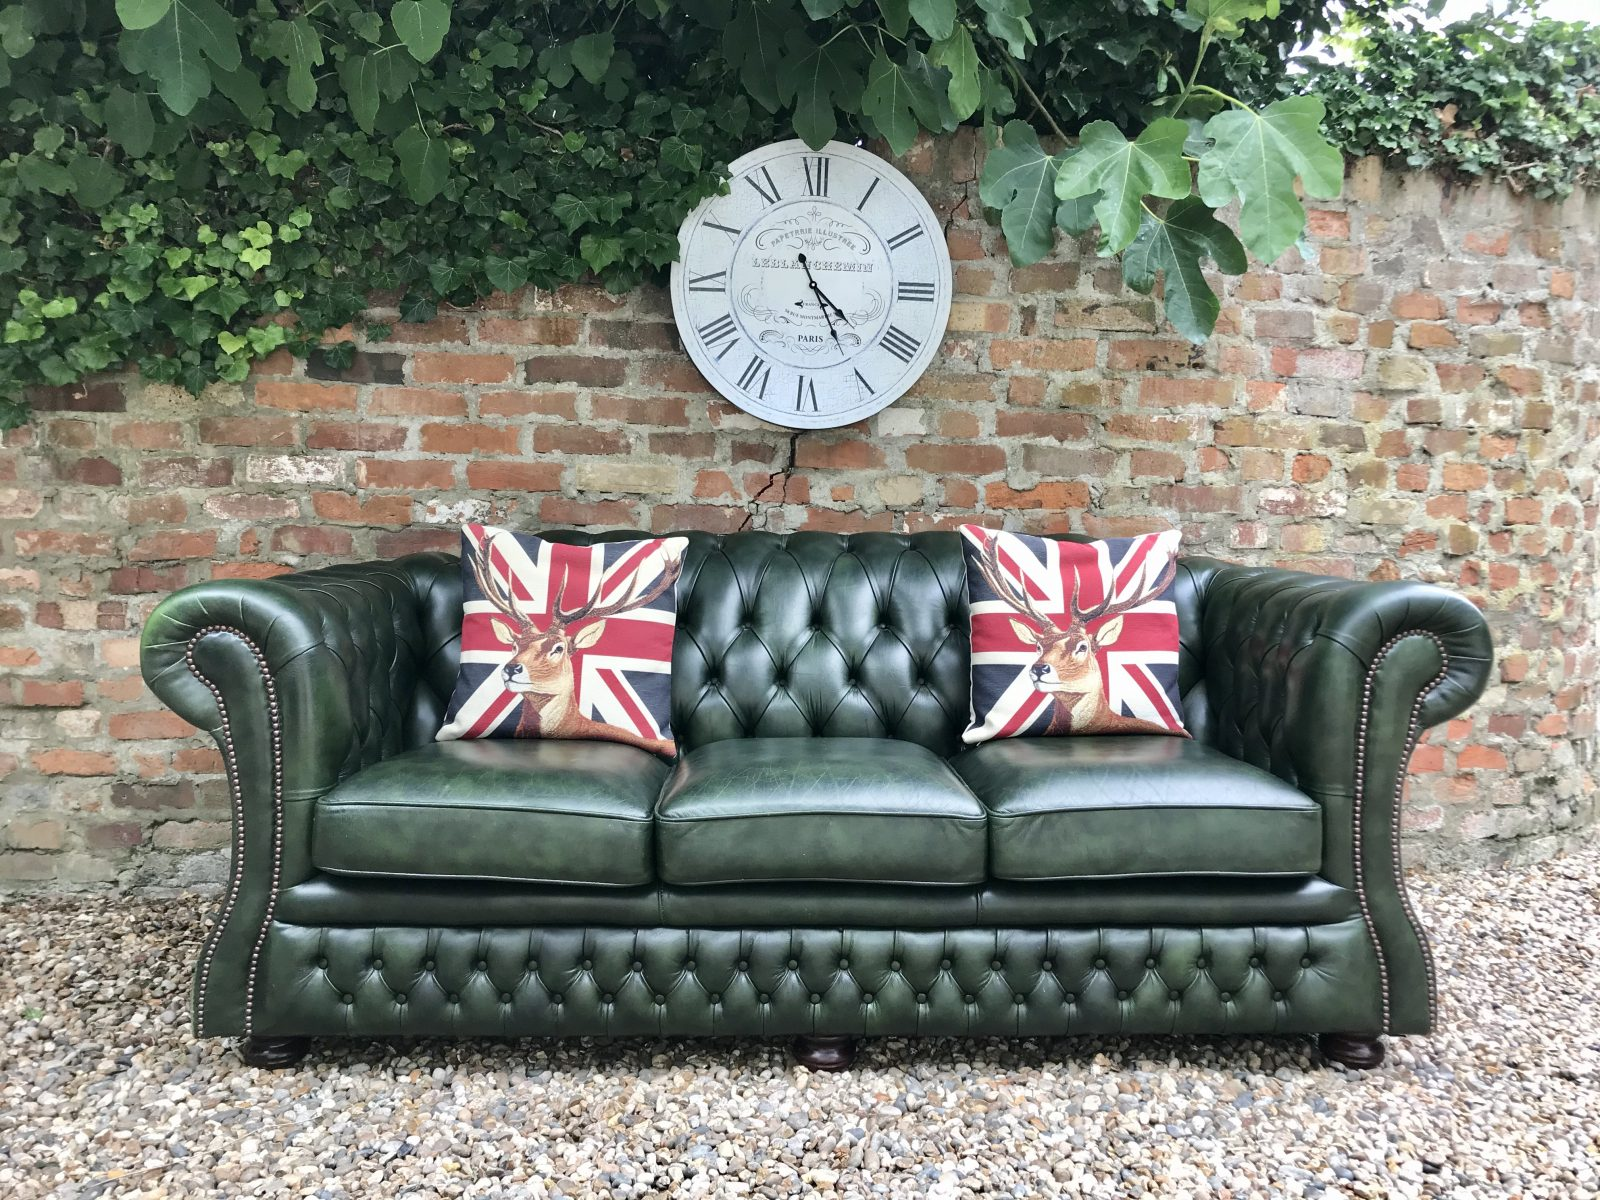 Stunning Forest Green Chesterfield Sofa By Springvale.